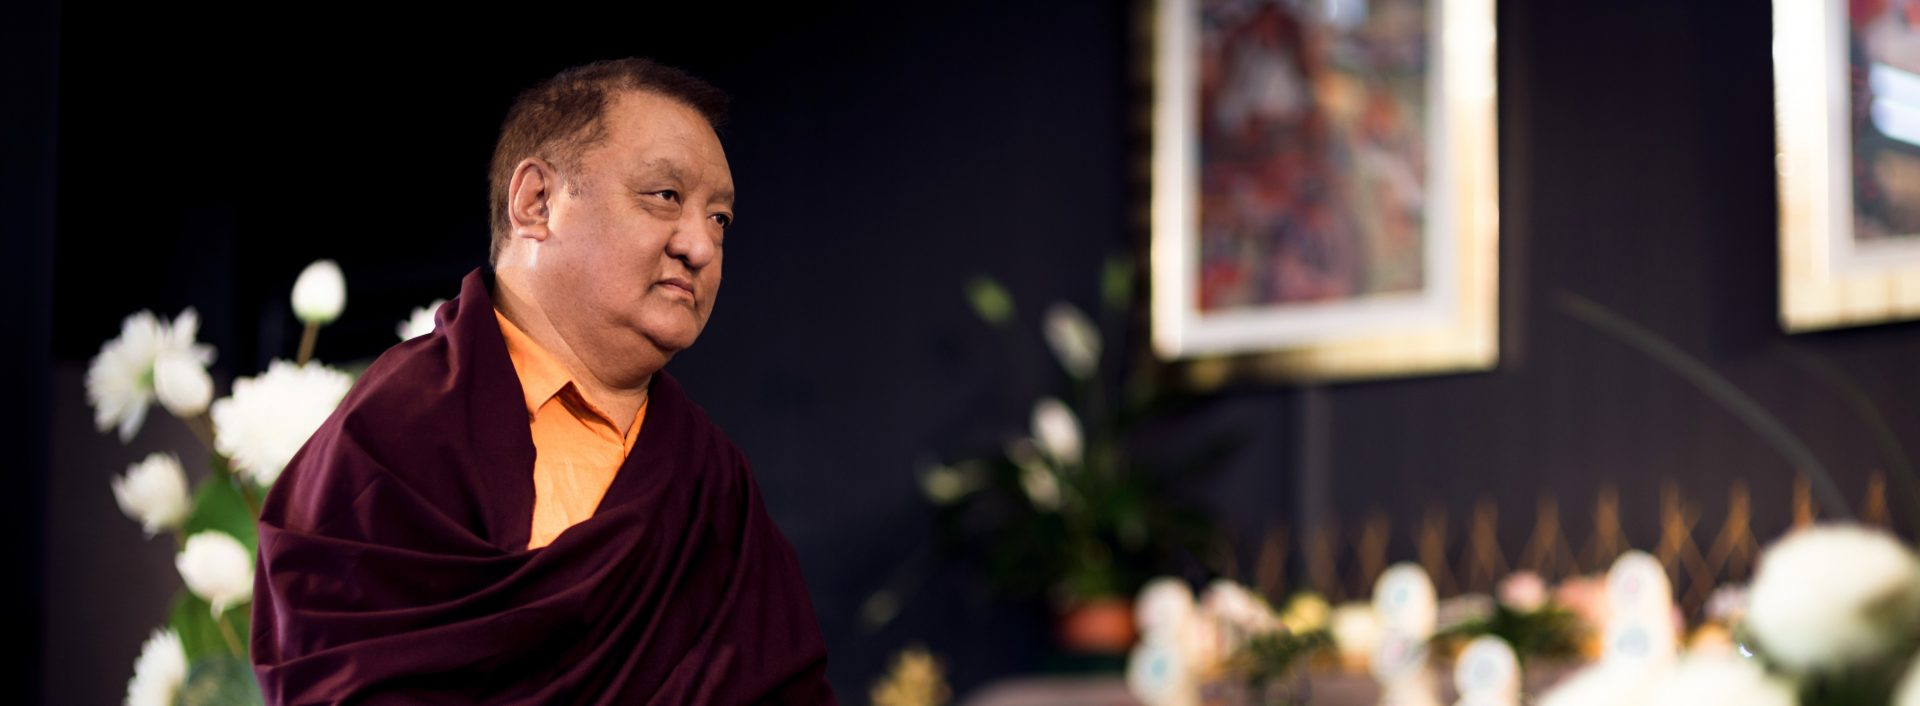 His Holiness the 14th Kunzig Shamar Rinpoche